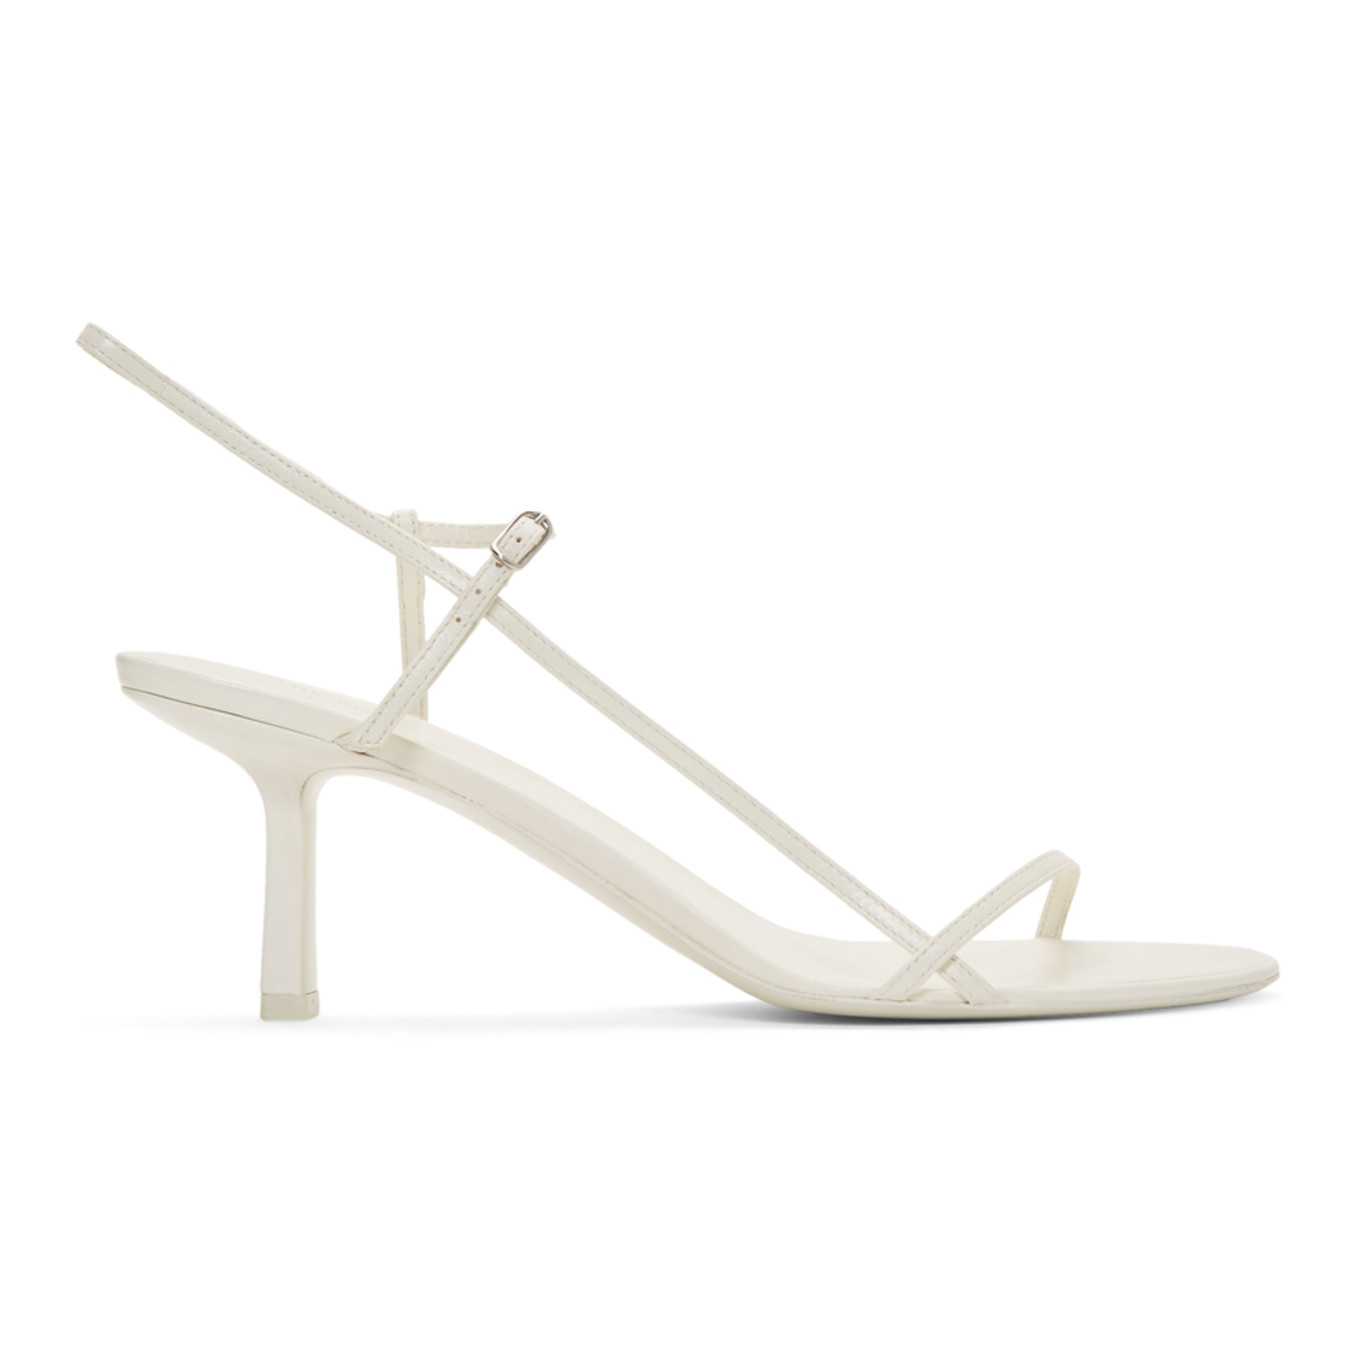 White Bare Heeled Sandals by The Row